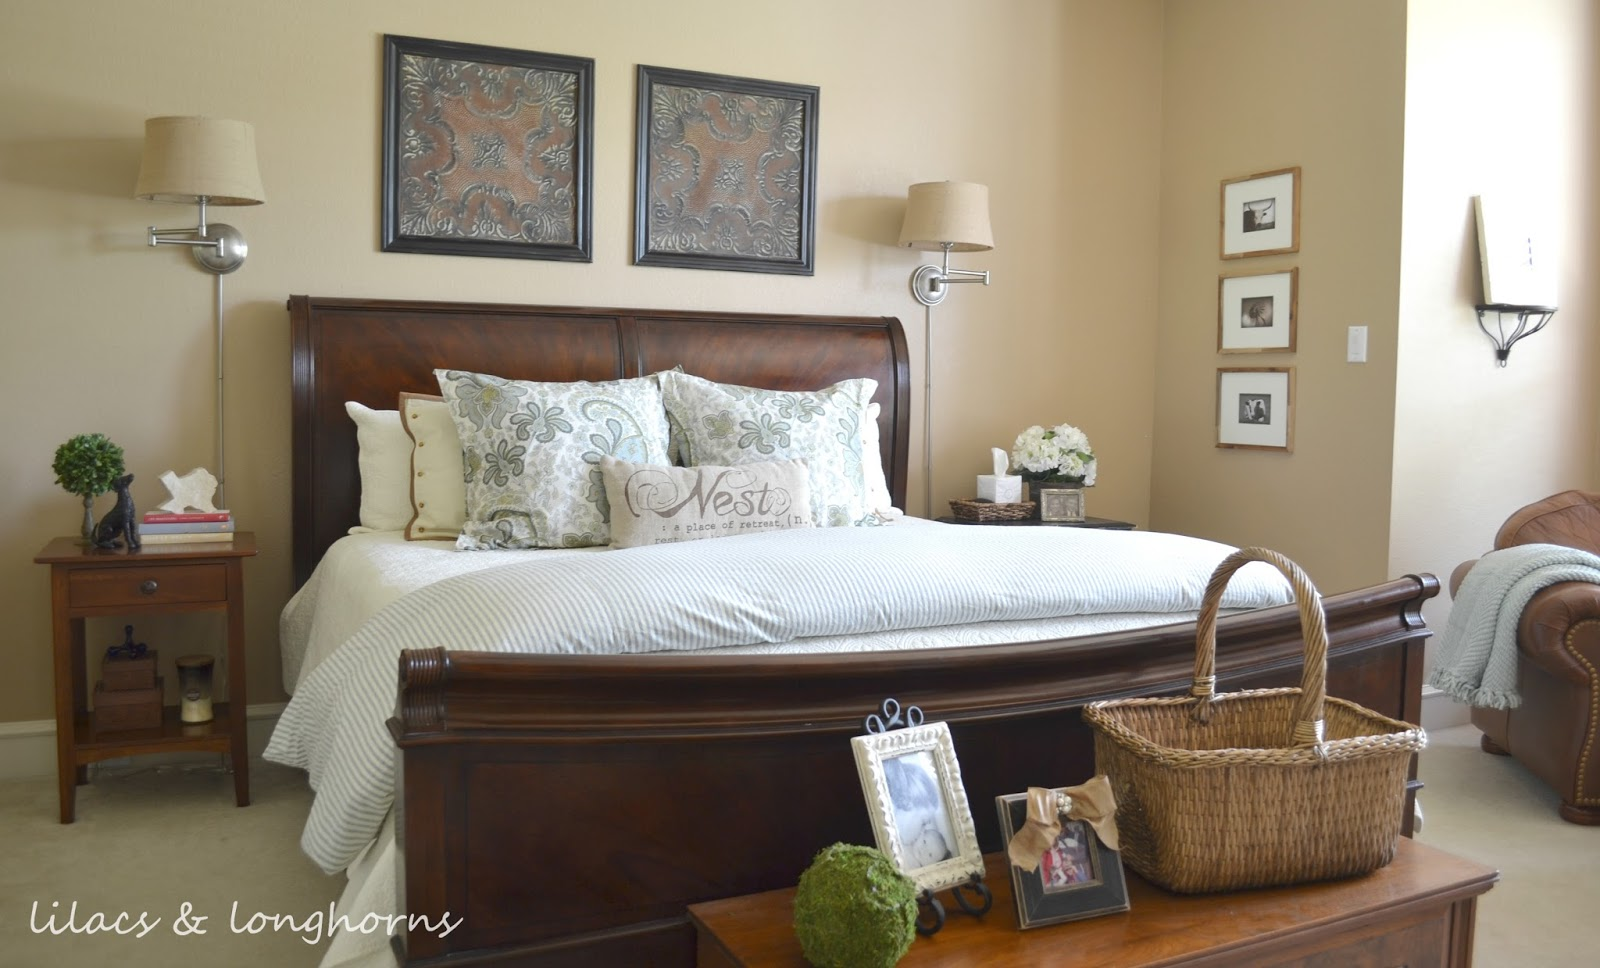 Blue And Tan Master Bedroom master bedroom archives - lilacs and longhornslilacs and longhorns